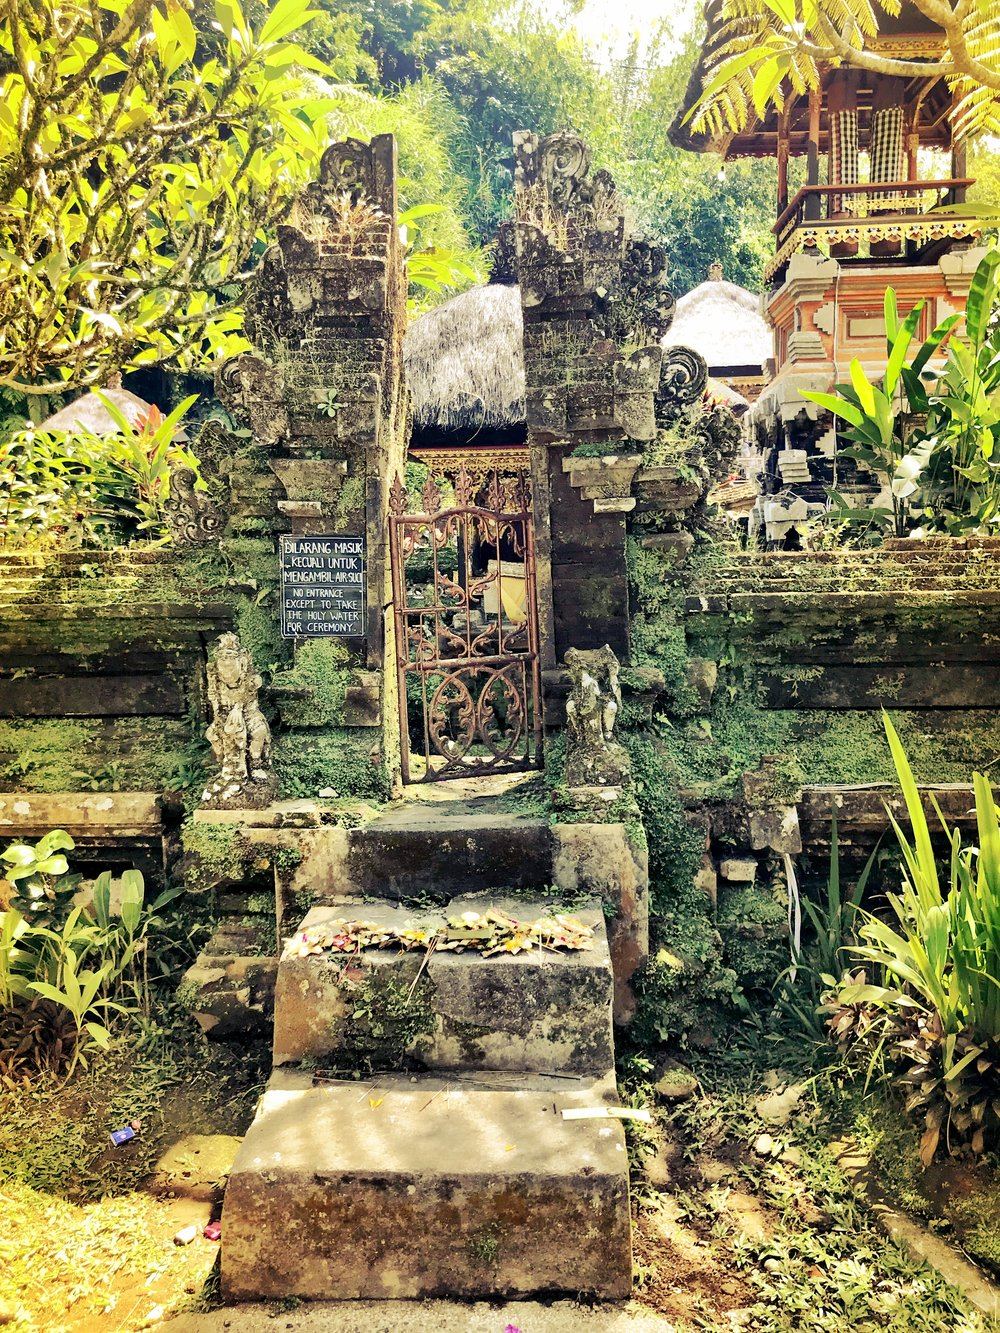 The lichen-covered stones lend Balinese temples an ancient air